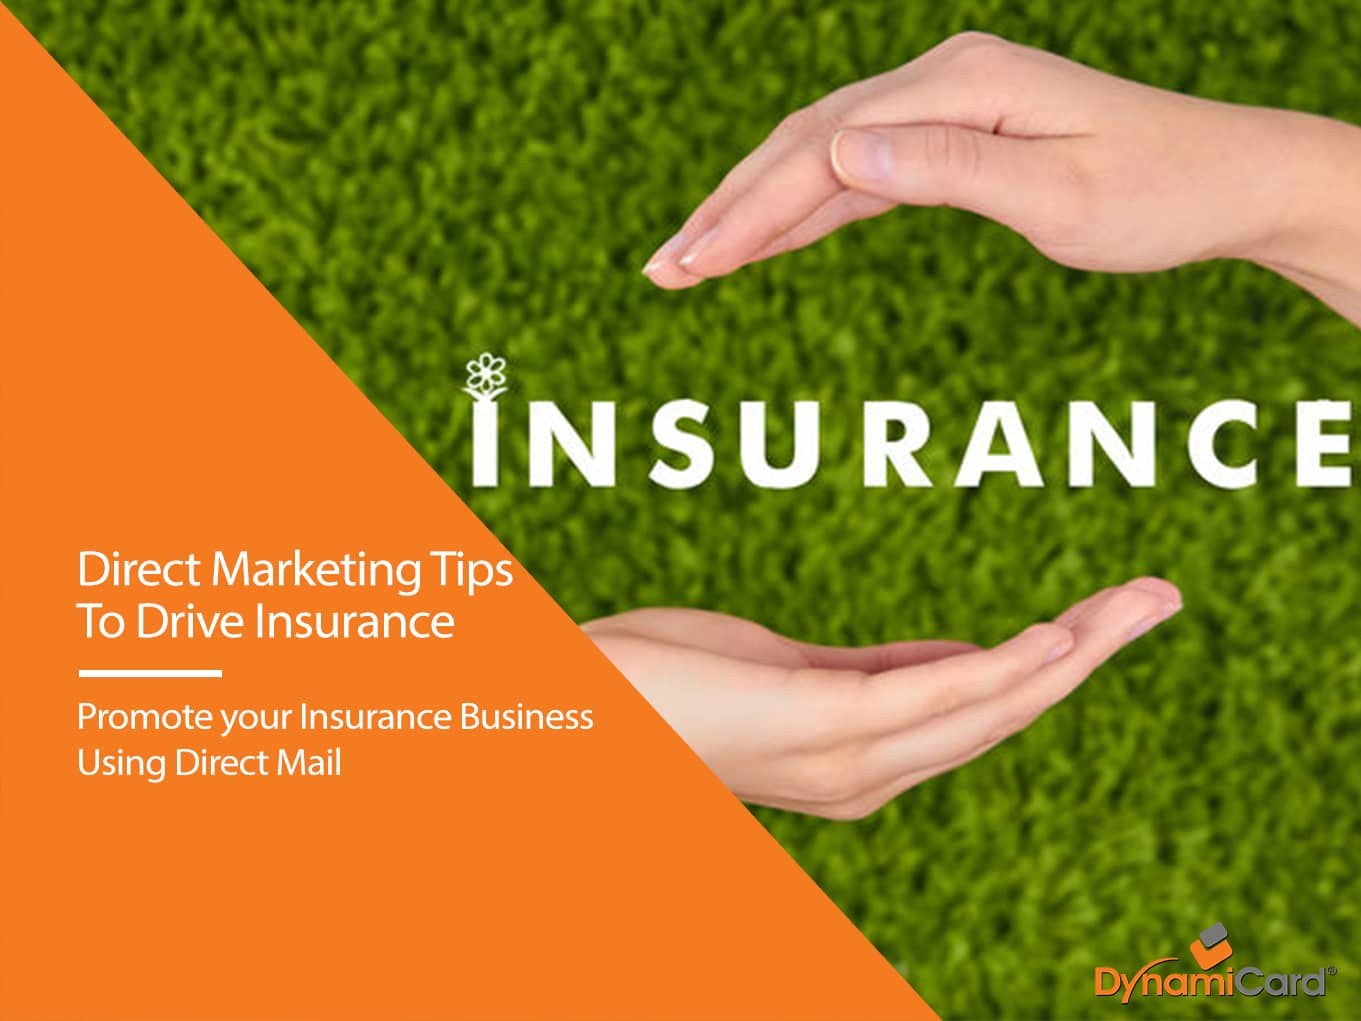 Direct Marketing Tips To Drive Insurance Sales